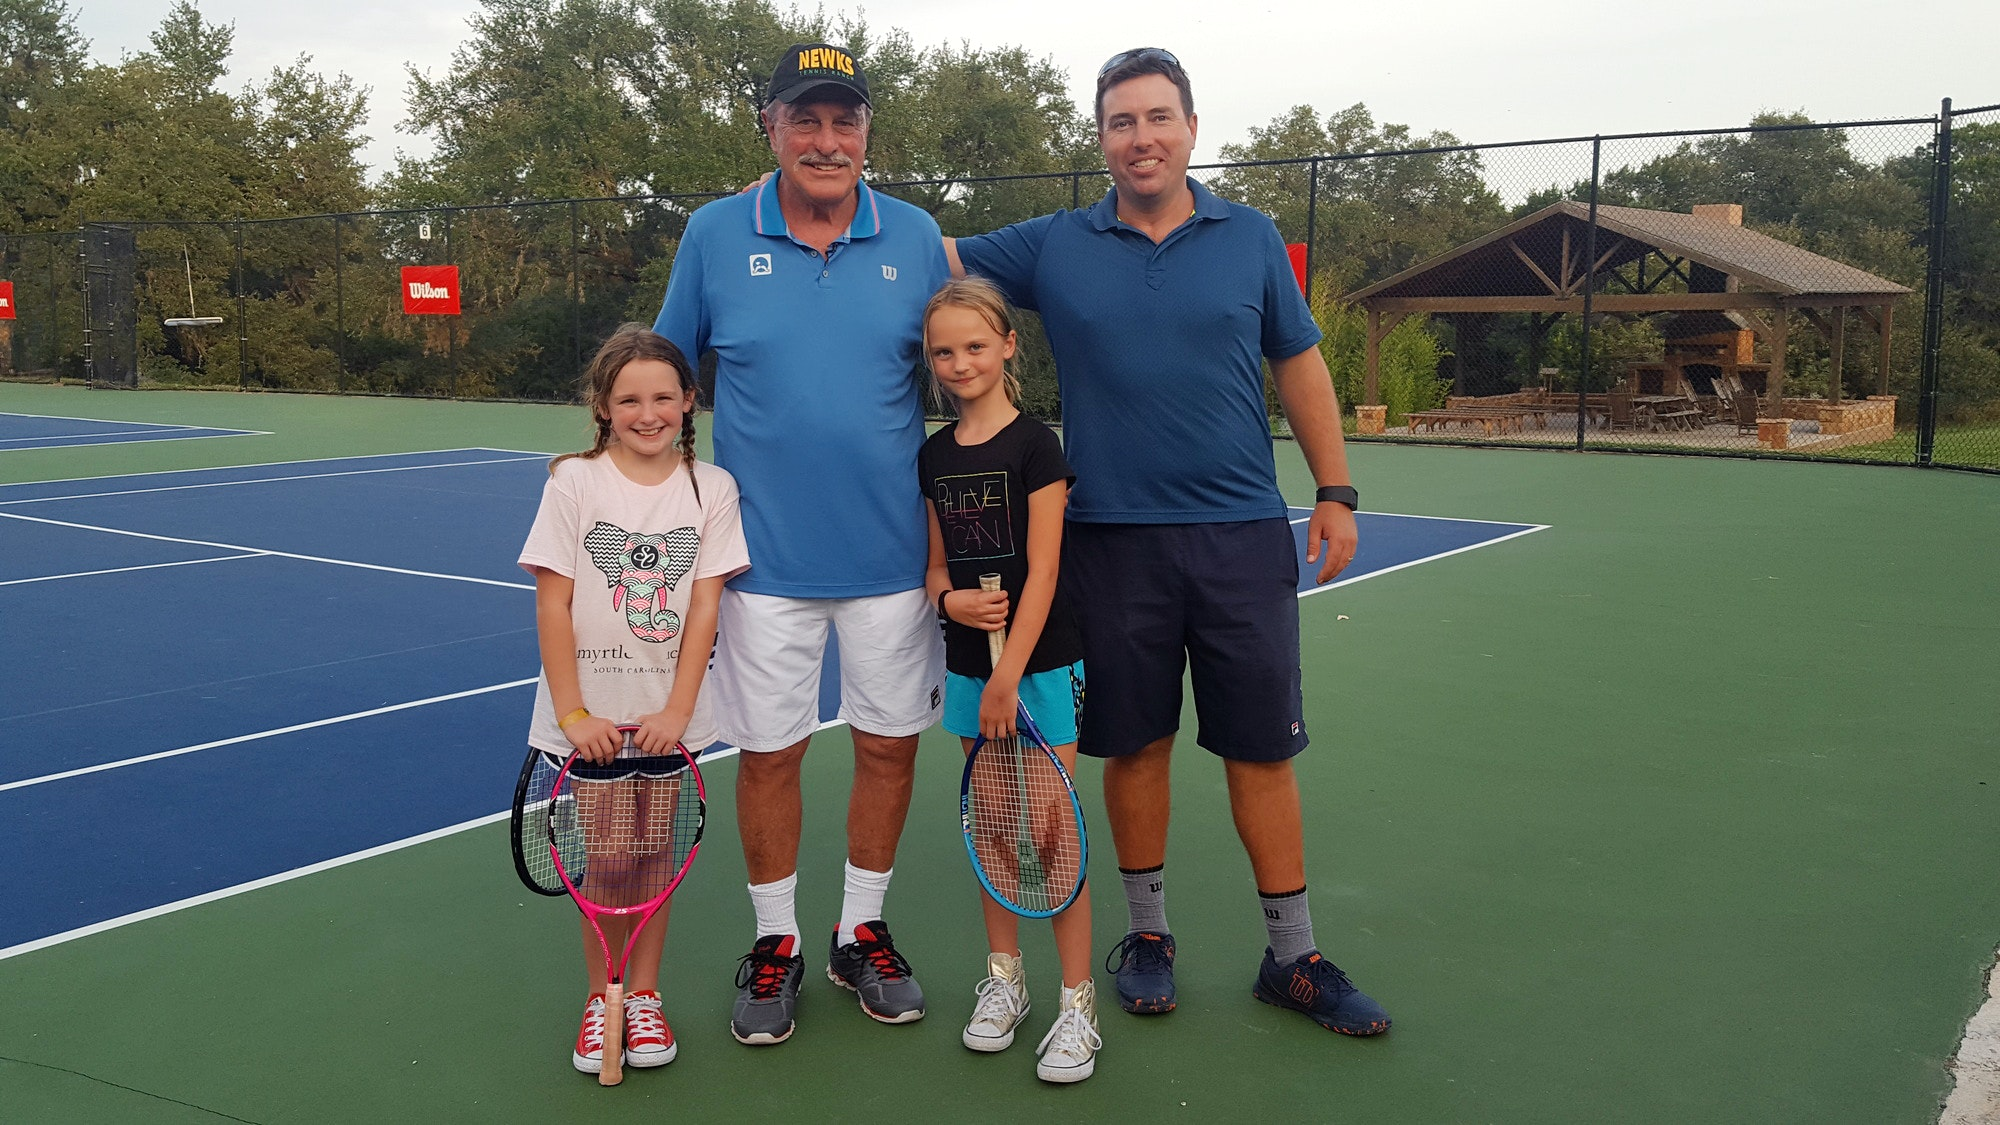 Christopher J. teaches tennis lessons in New Braunfels, TX